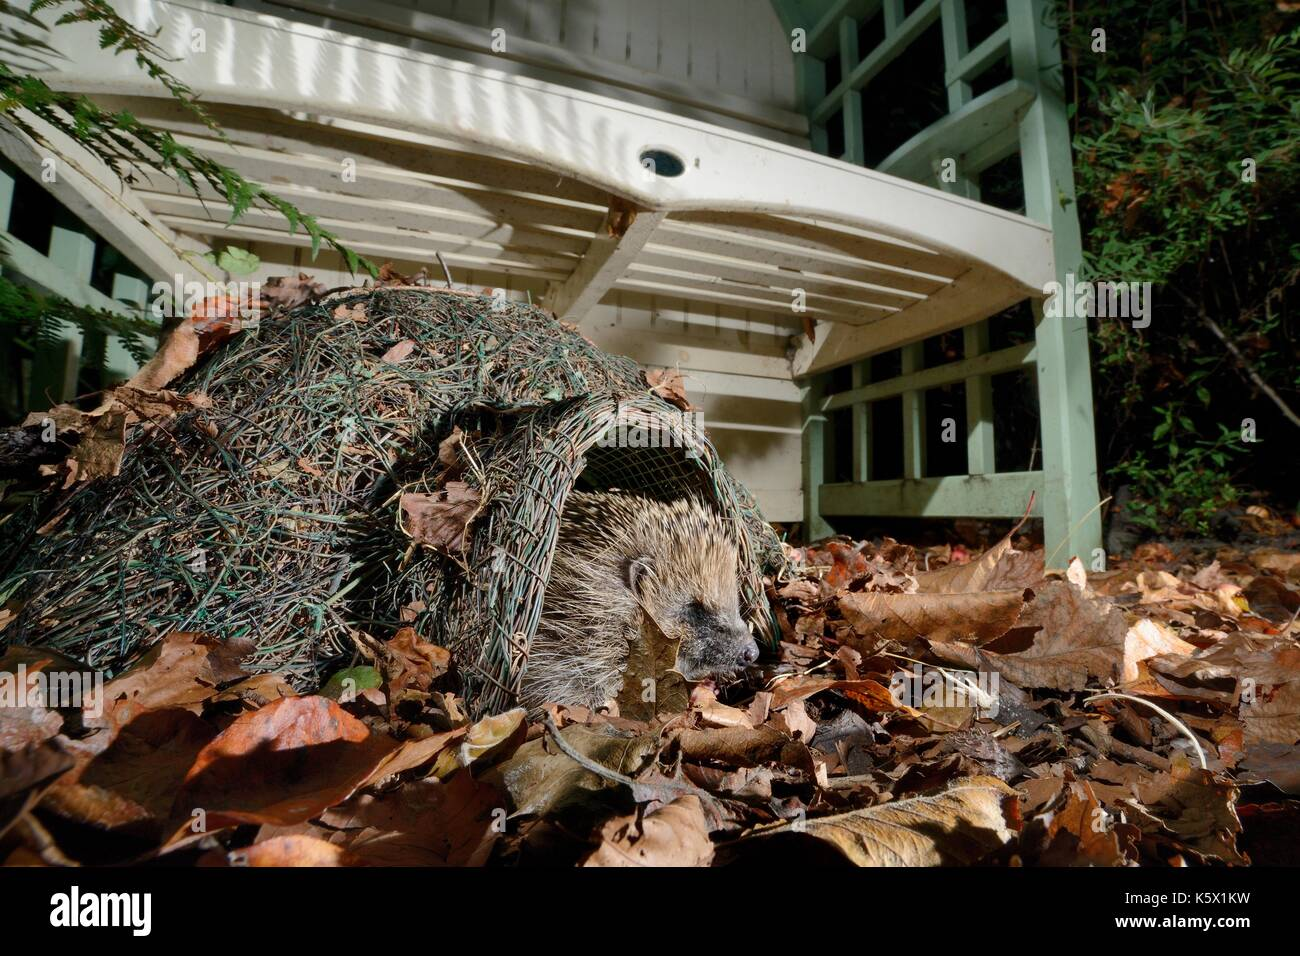 Hedgehog (Erinaceus europaeus) emerging from a hedgehog house at night in a suburban garden, Chippenham, Wiltshire, UK, September. - Stock Image